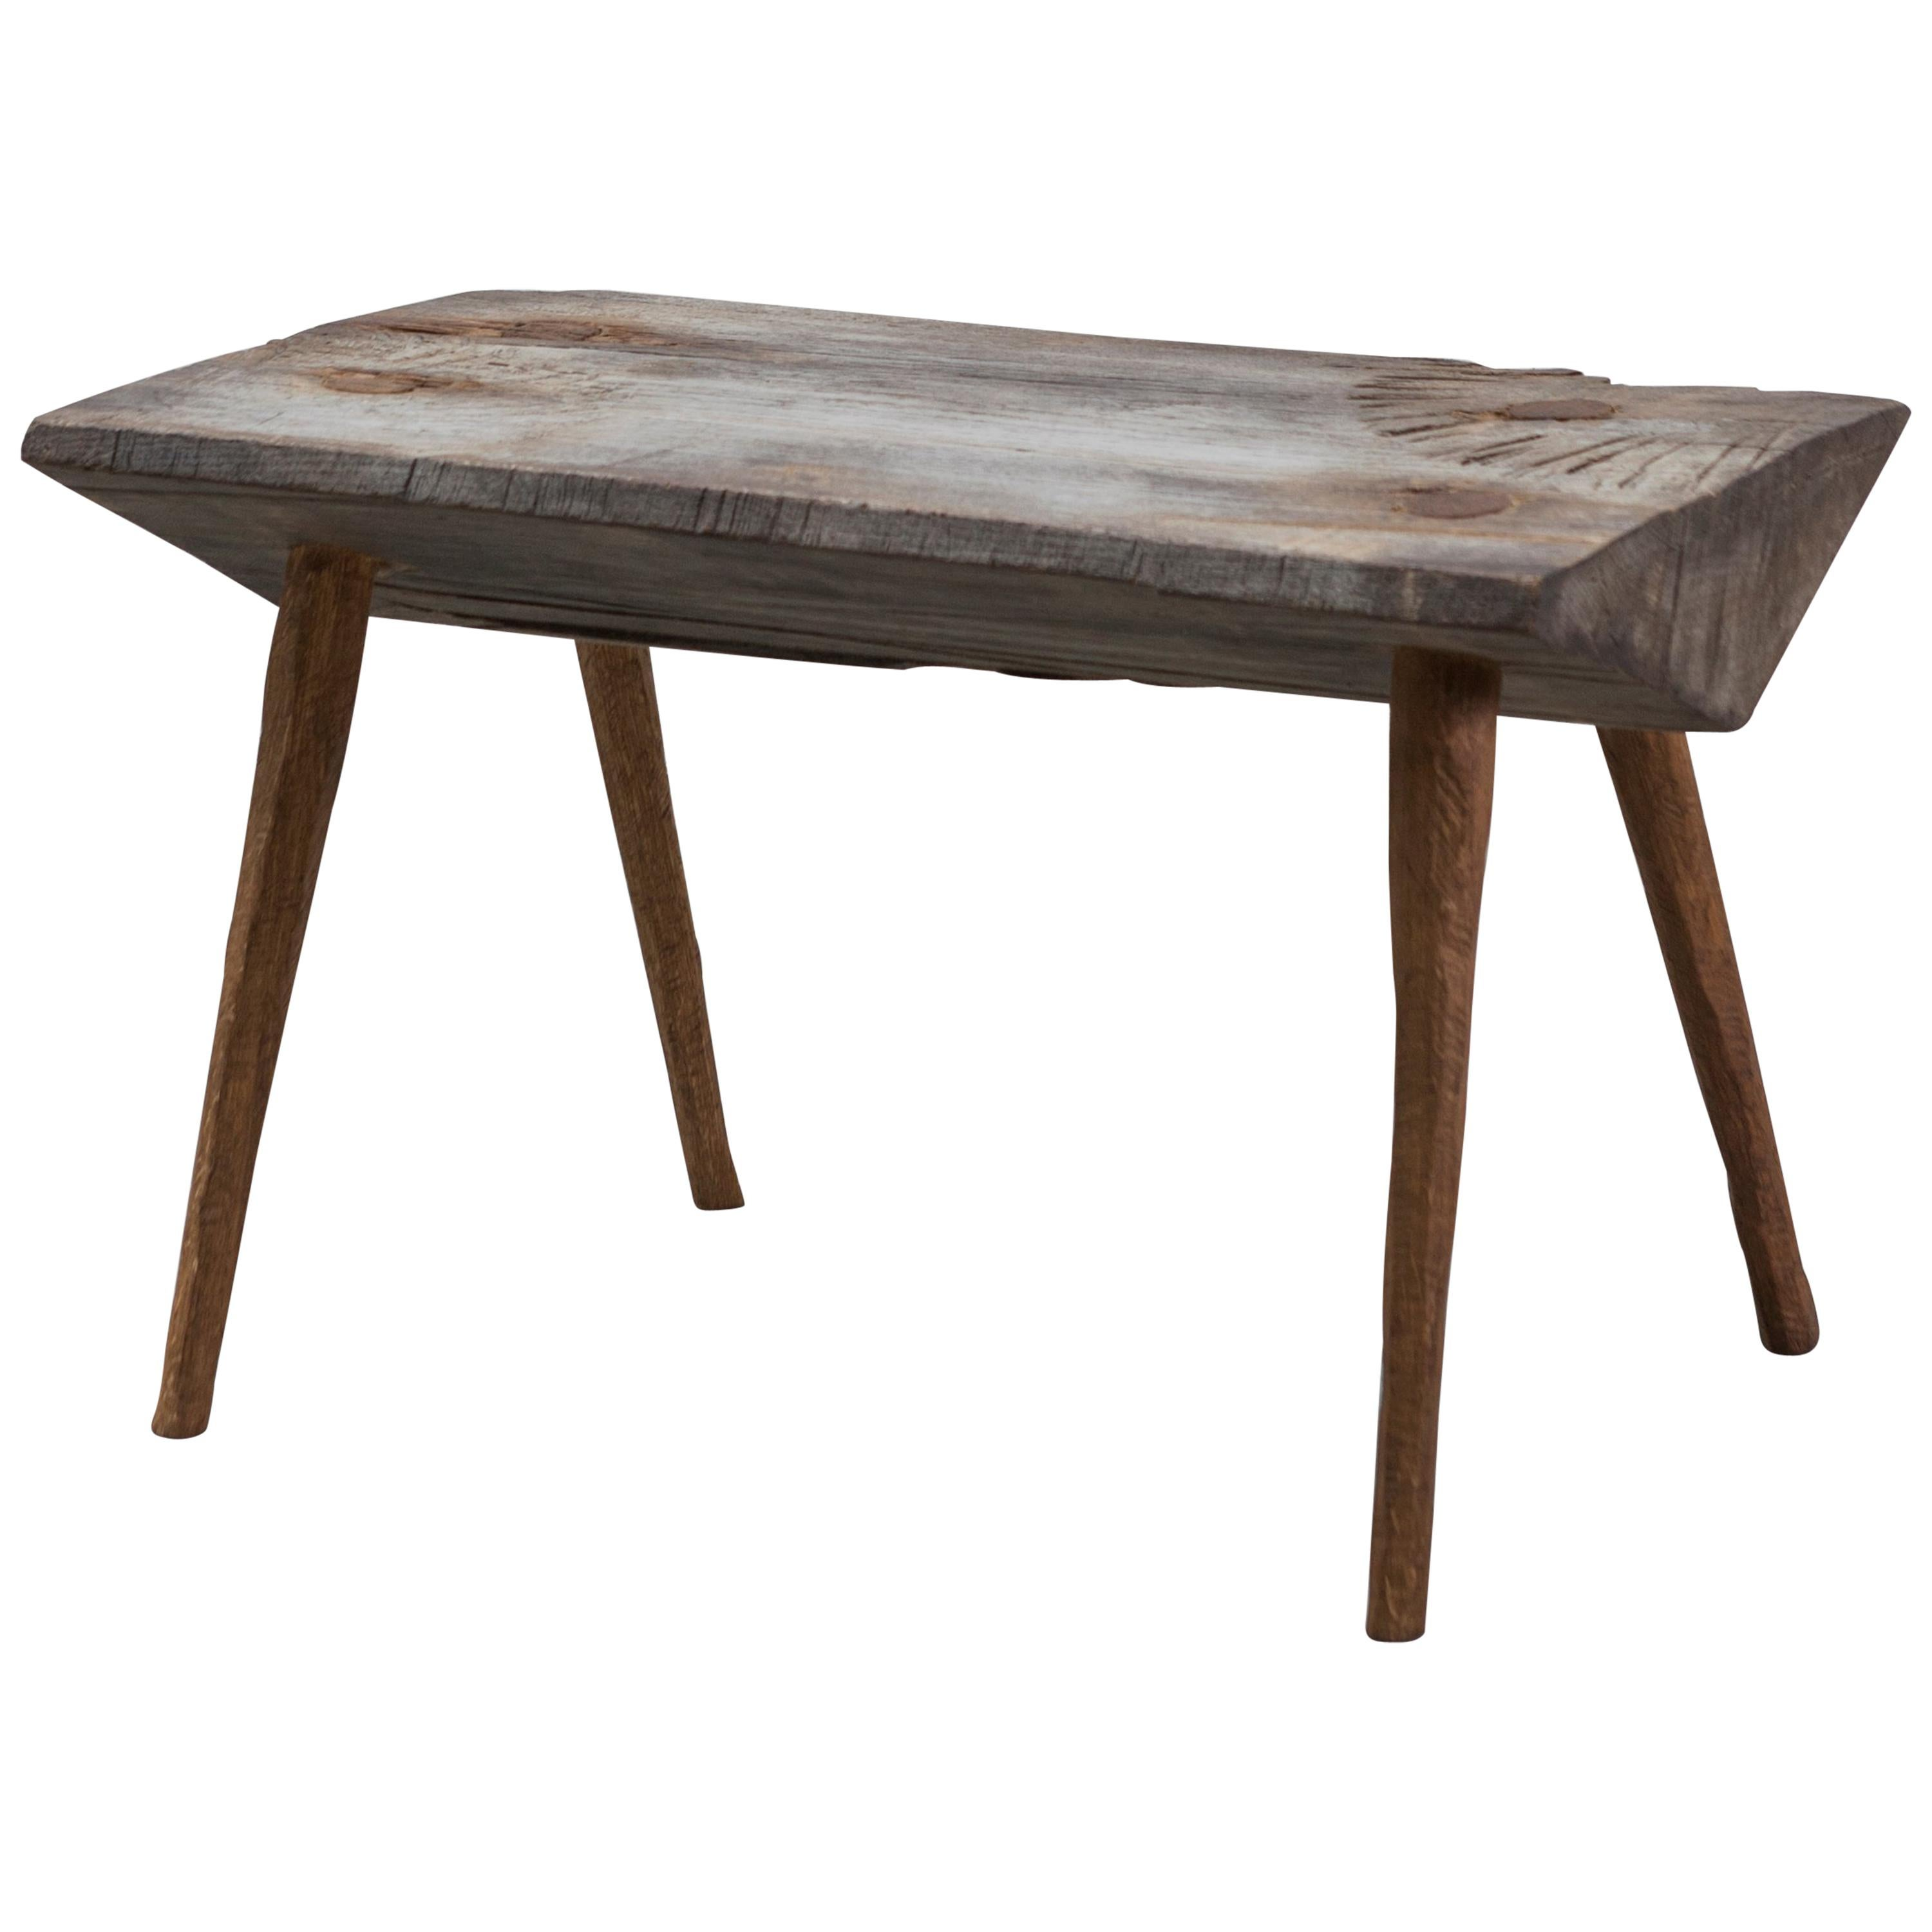 Contemporary Brutalist Style Small Table #9 in Solid Oak and Linseed Oil